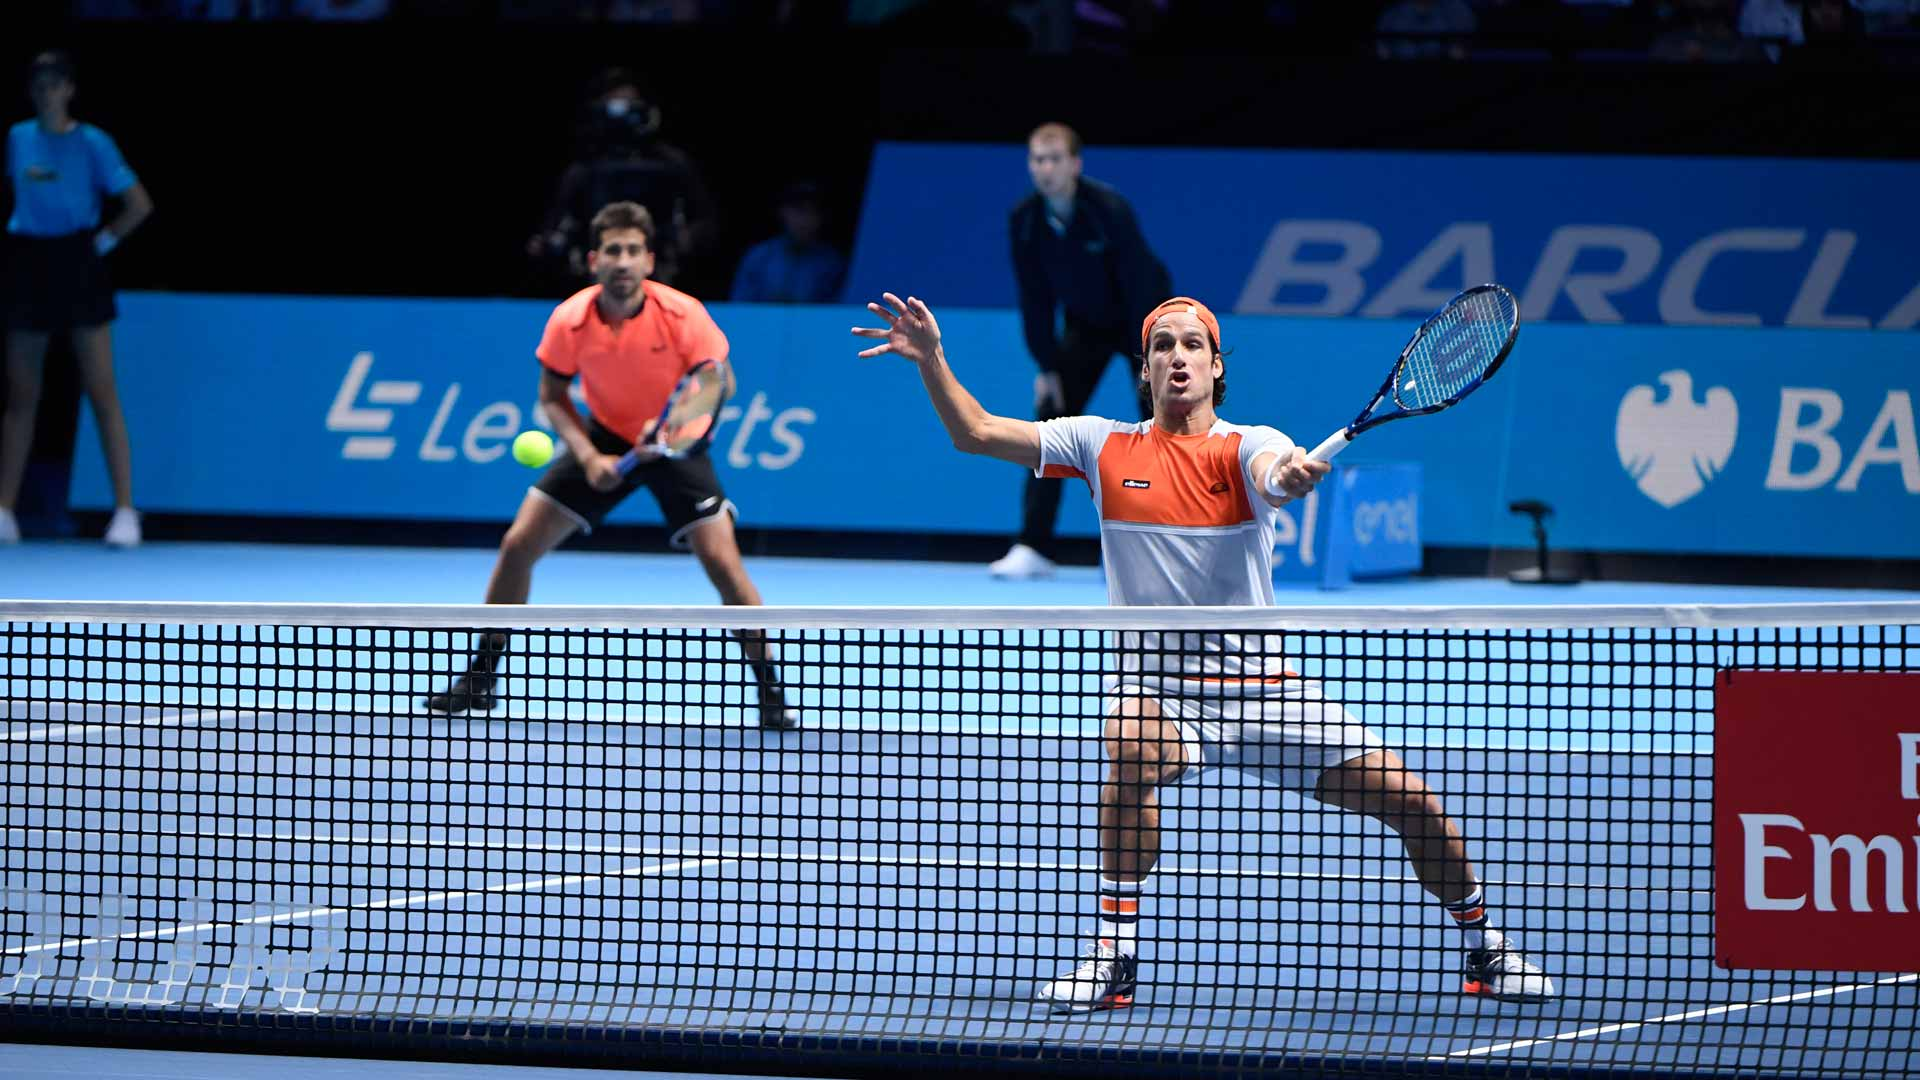 Marc Lopez (L) and Feliciano Lopez stay alive at the Barclays ATP World Tour Finals.